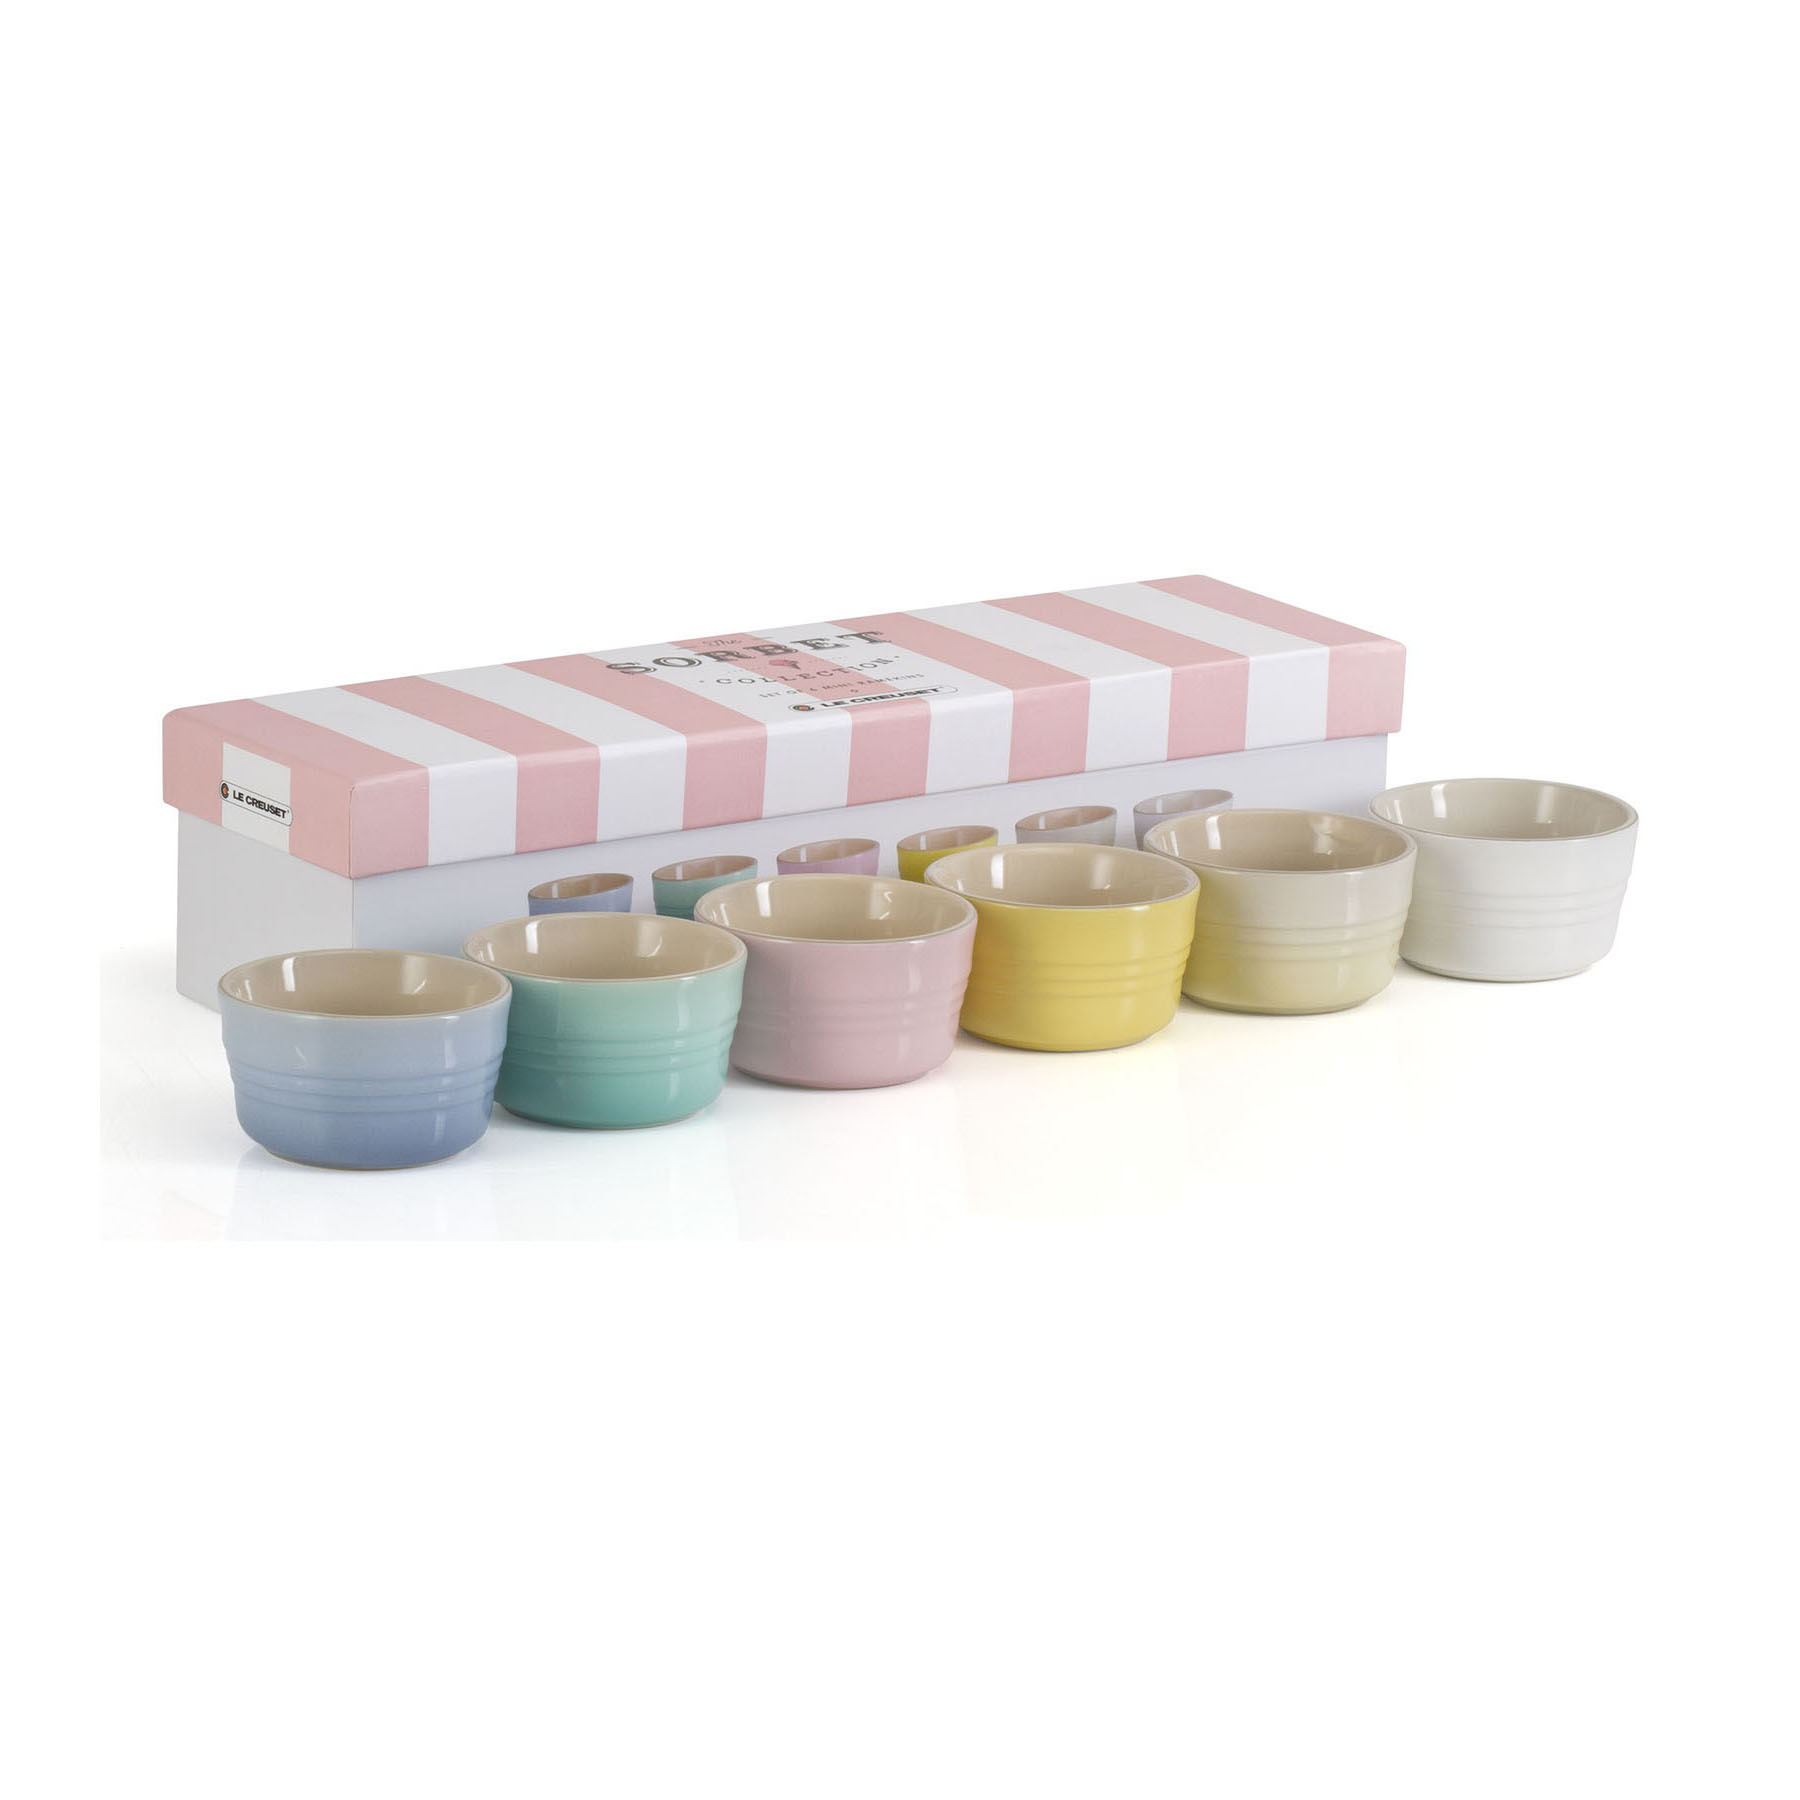 Le Creuset Sorbet Collection Set of 6 Mini Ramekins